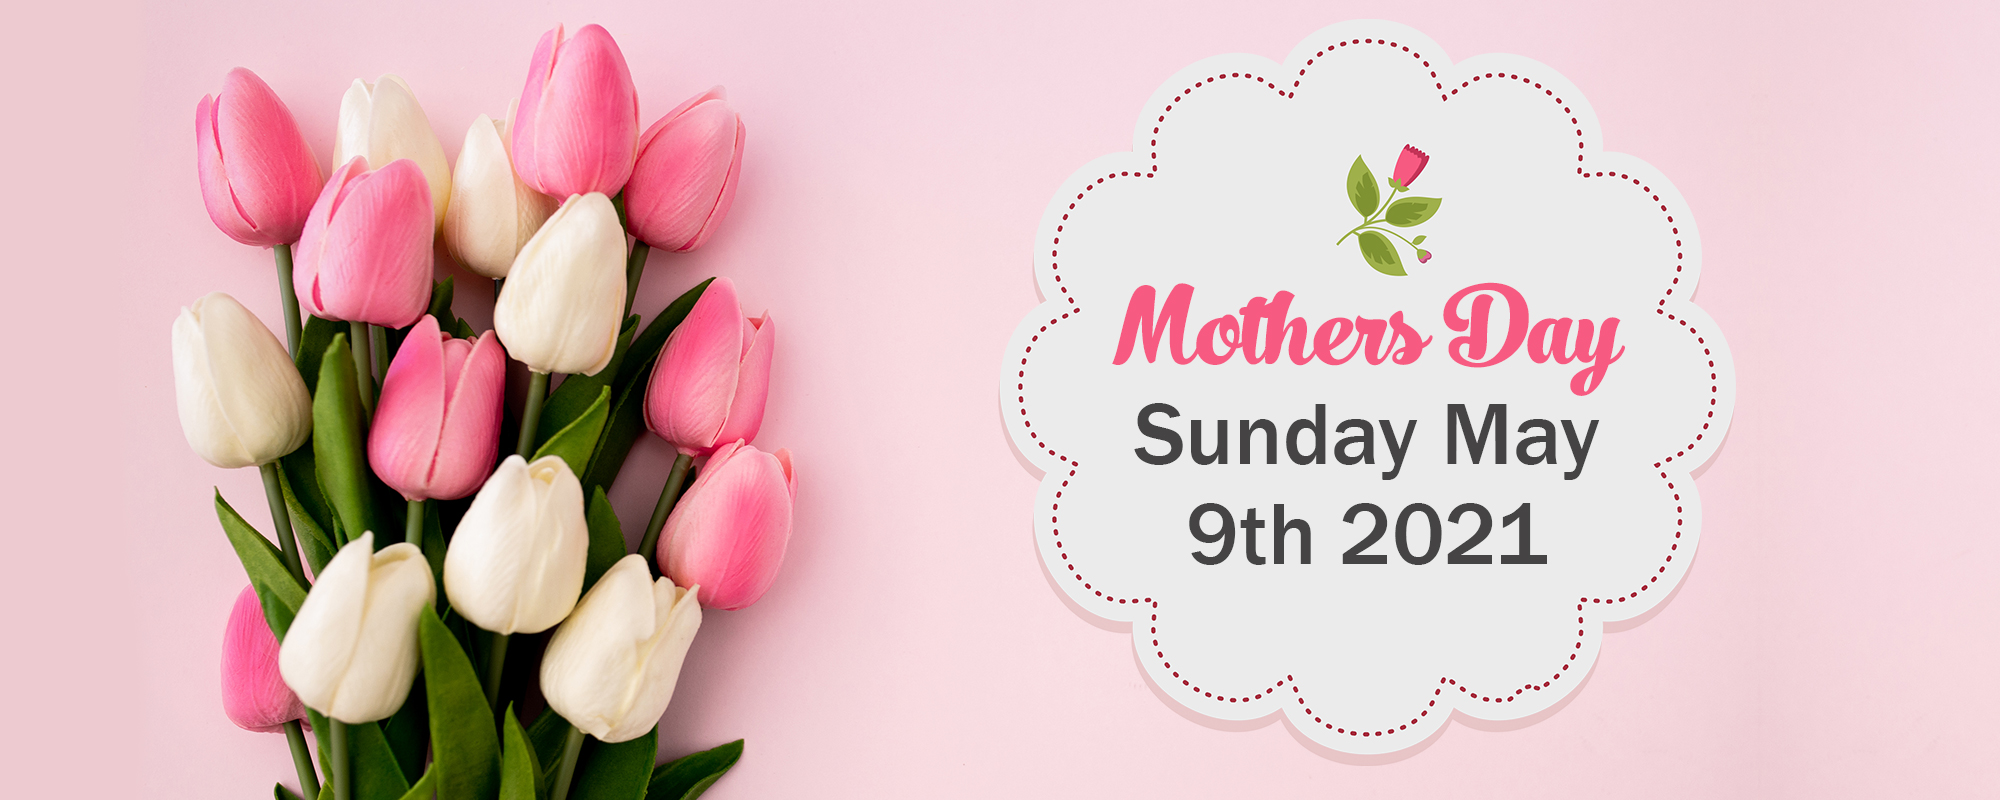 2021 Mothers Day Banners   Flower Store In a Box